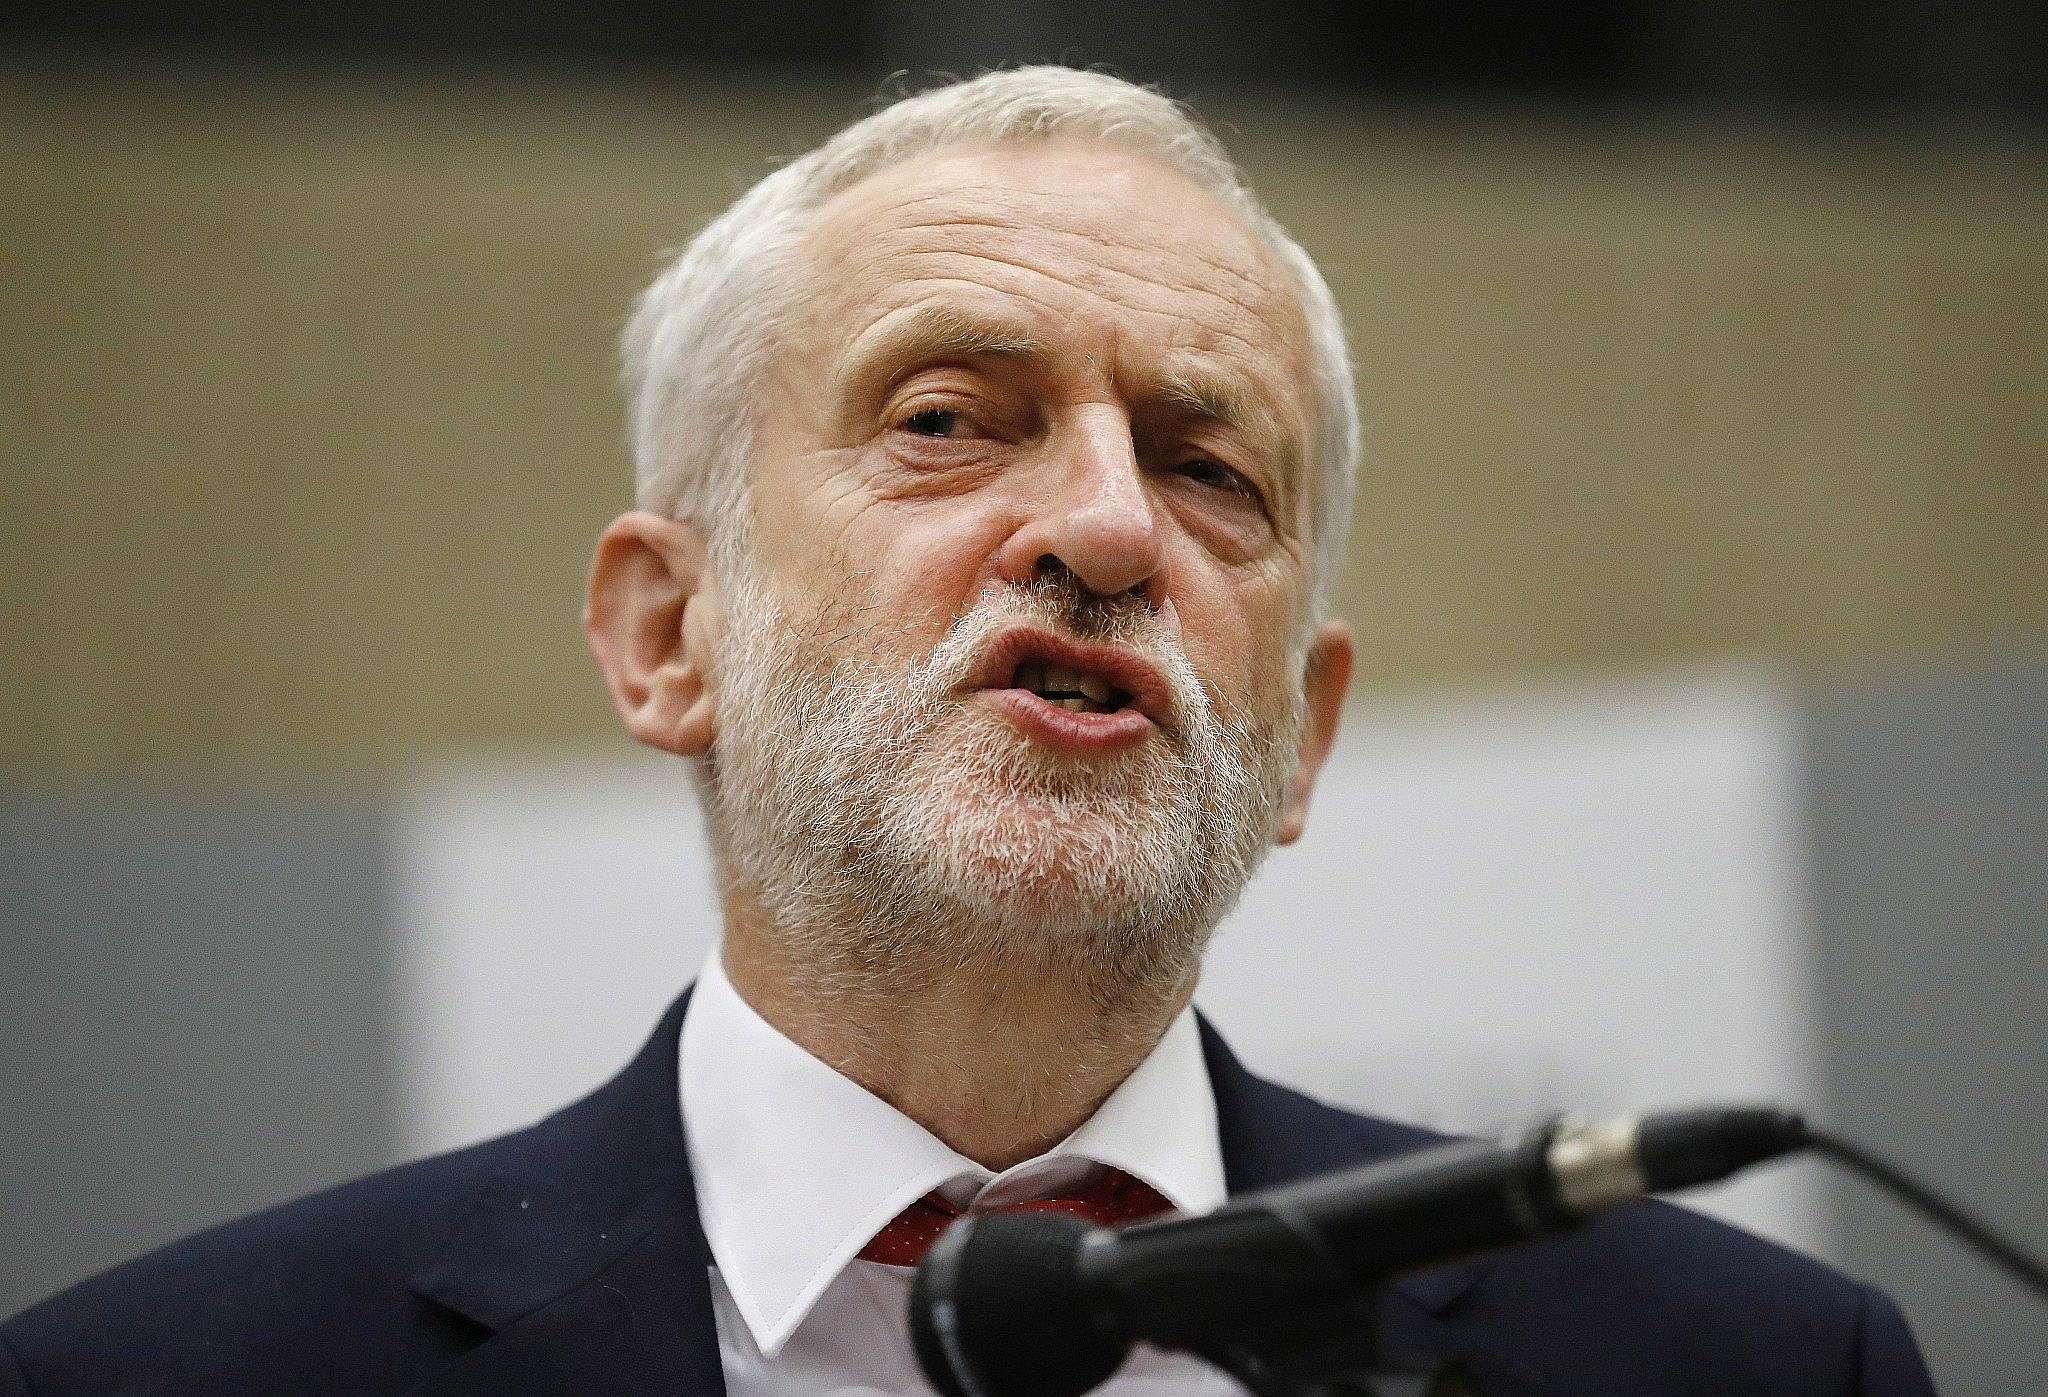 MPs urge Corbyn to suspend Shawcroft amid anti-Semitism row